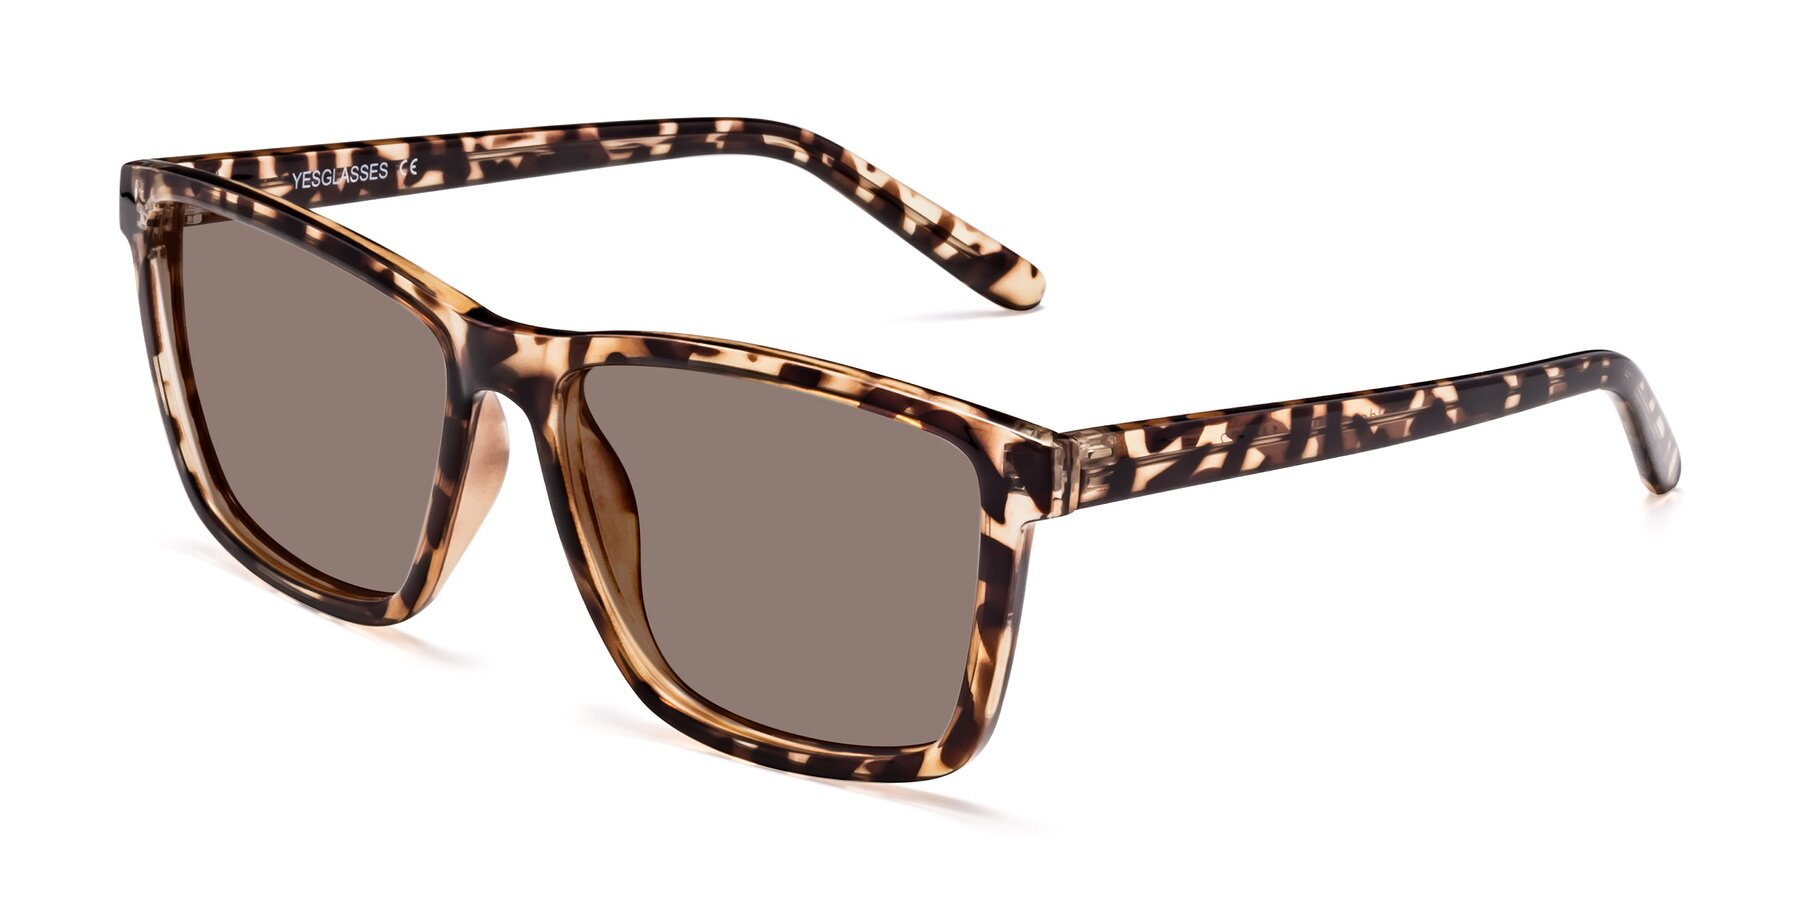 Angle of Sheldon in Tortoise with Medium Brown Tinted Lenses